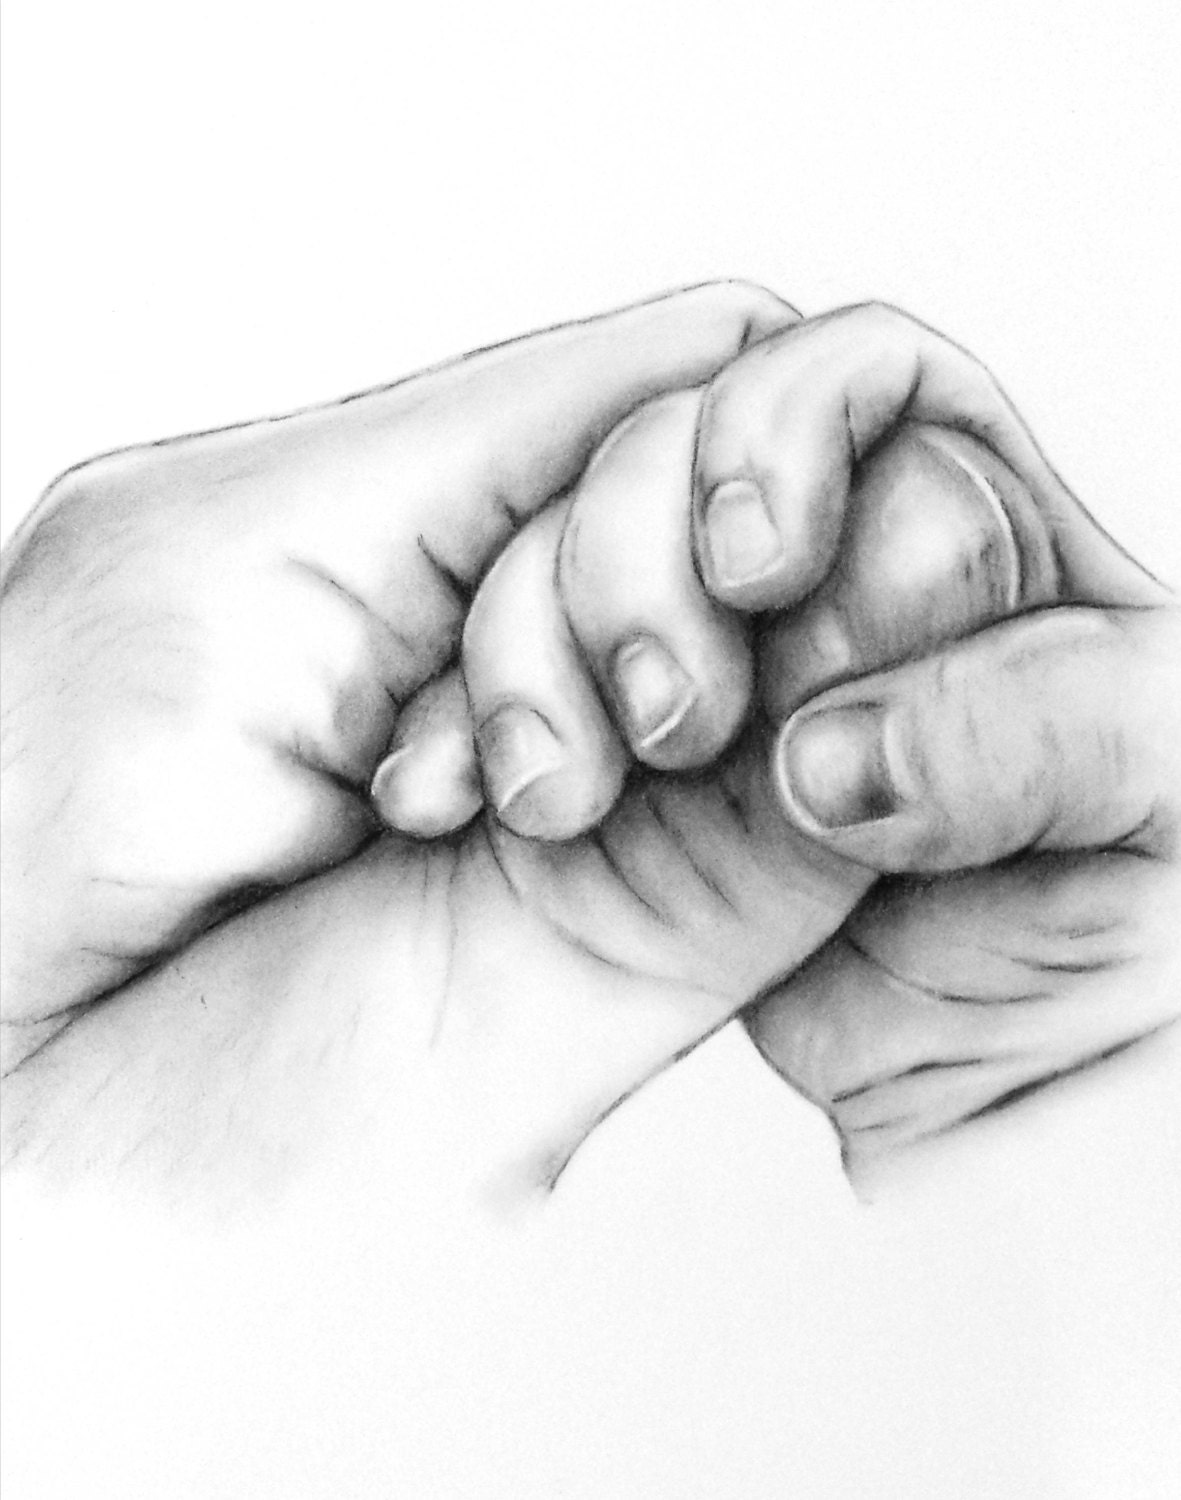 Custom Charcoal Drawing from your photo of Baby Hands not